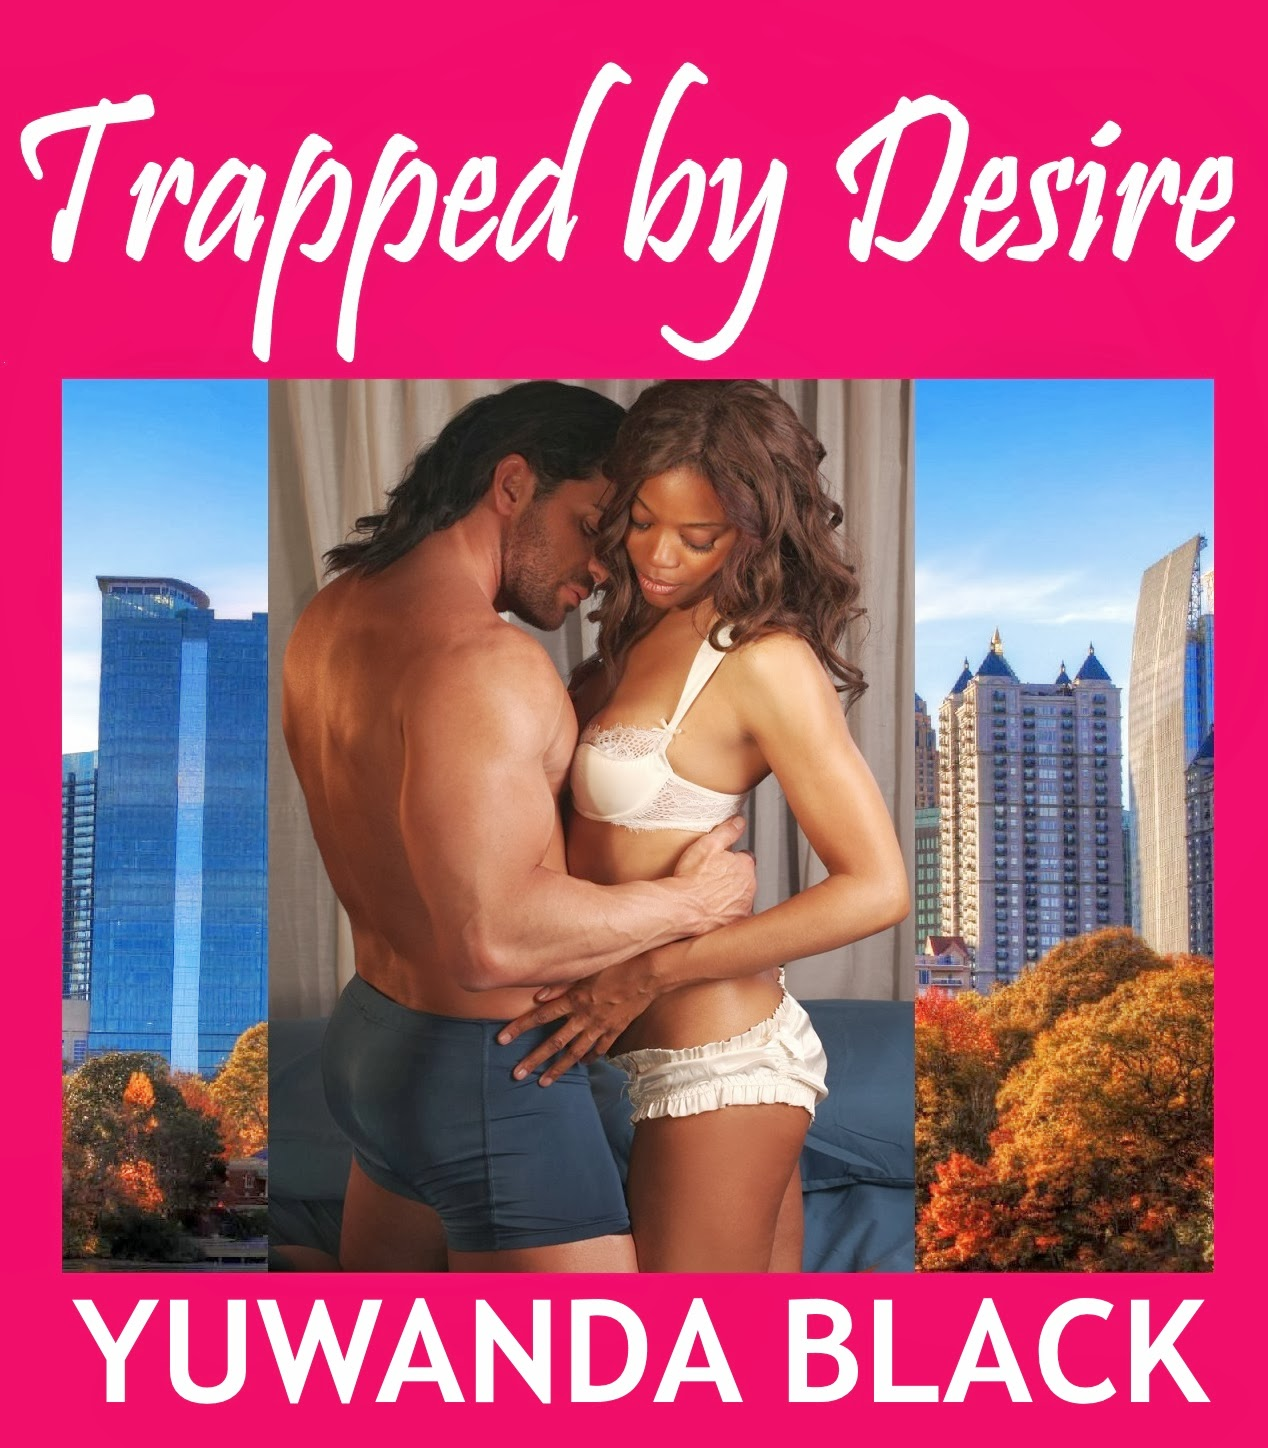 Congratulations To My Big Sis Yuwanda Black For Her New Romance Book Release Trapped By Desire Hot